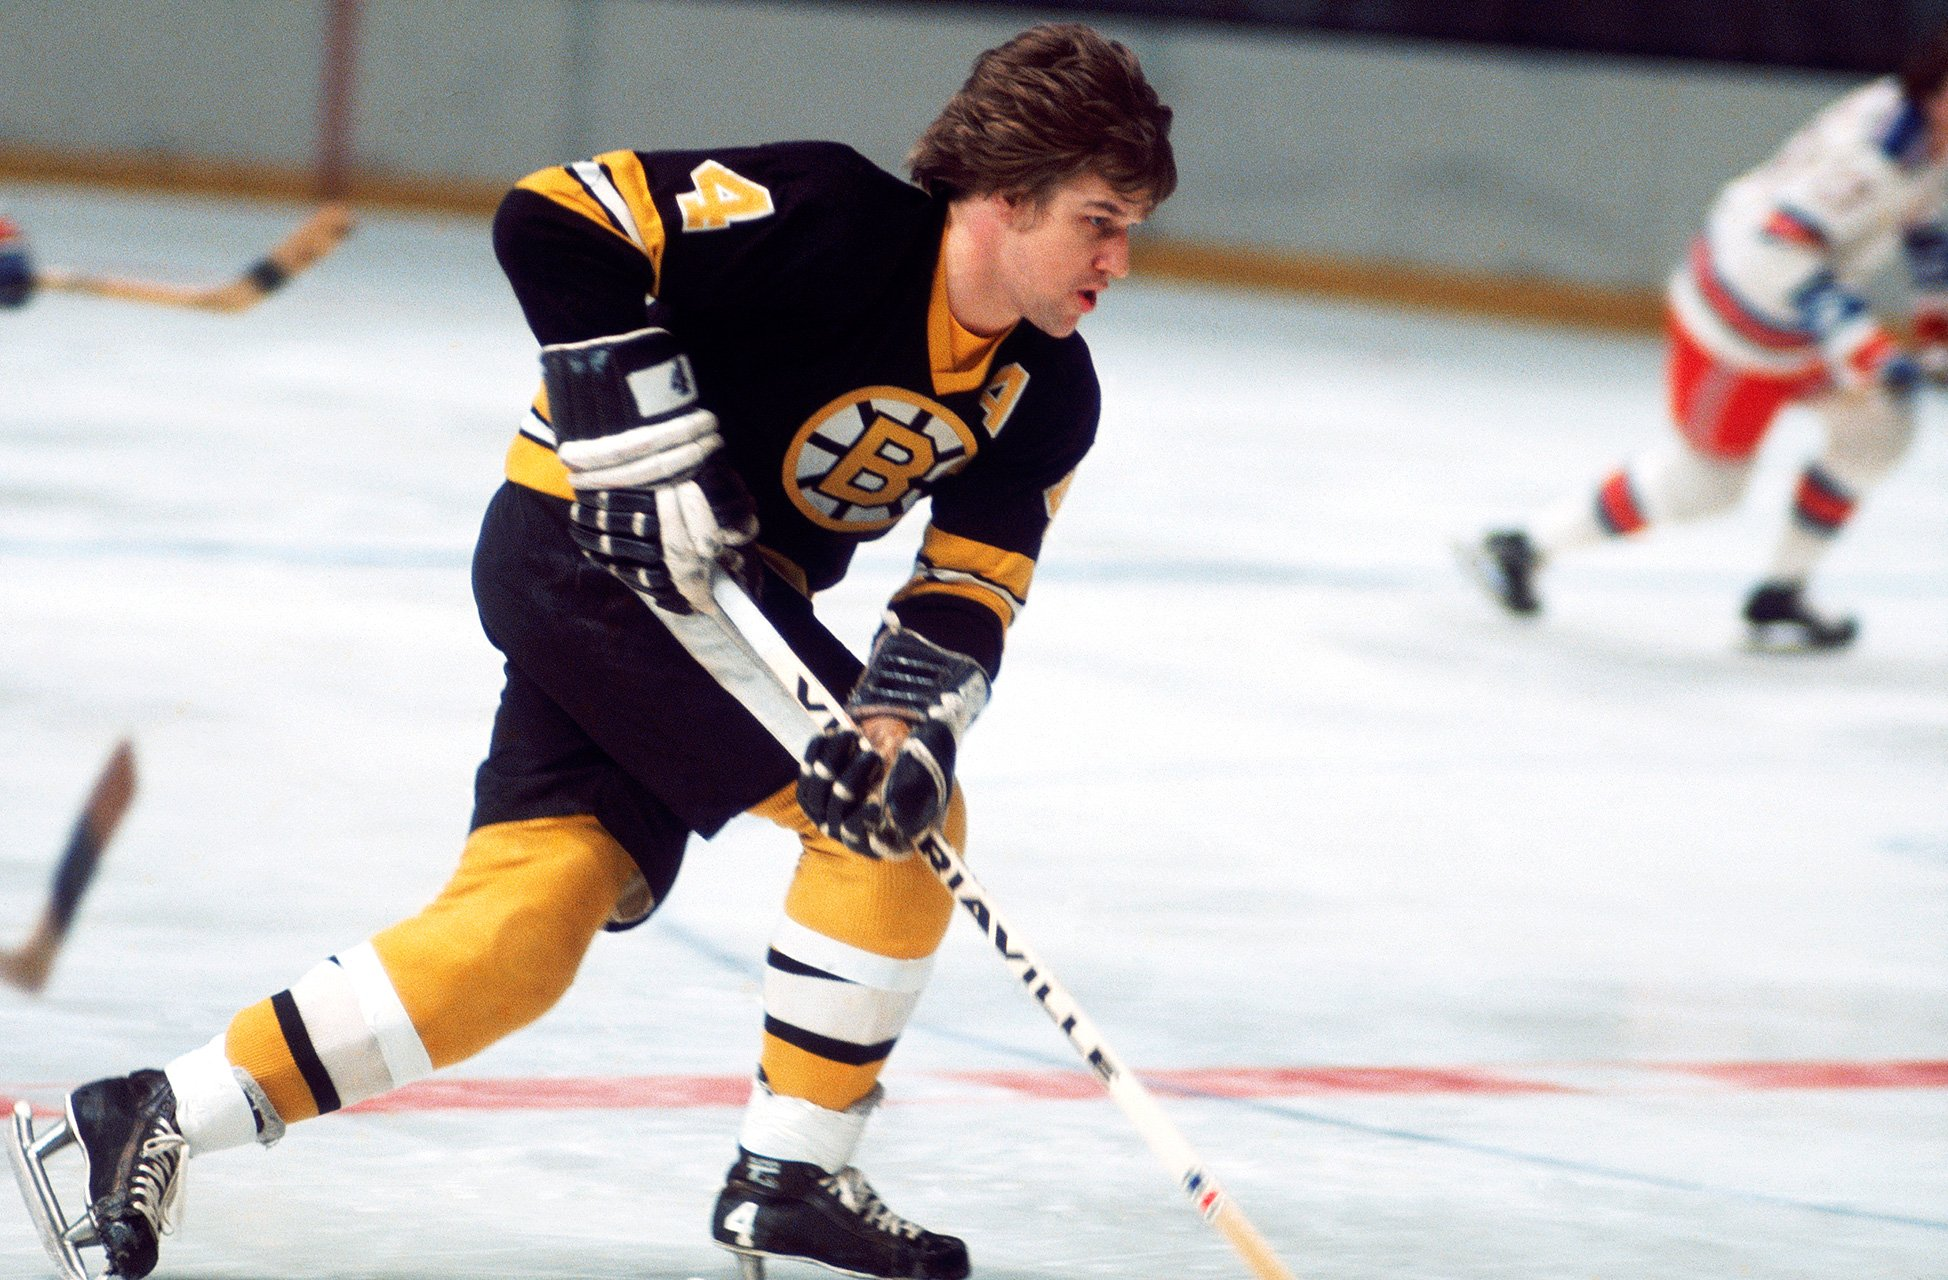 Happy Birthday to Bobby Orr, who turns 69 today!